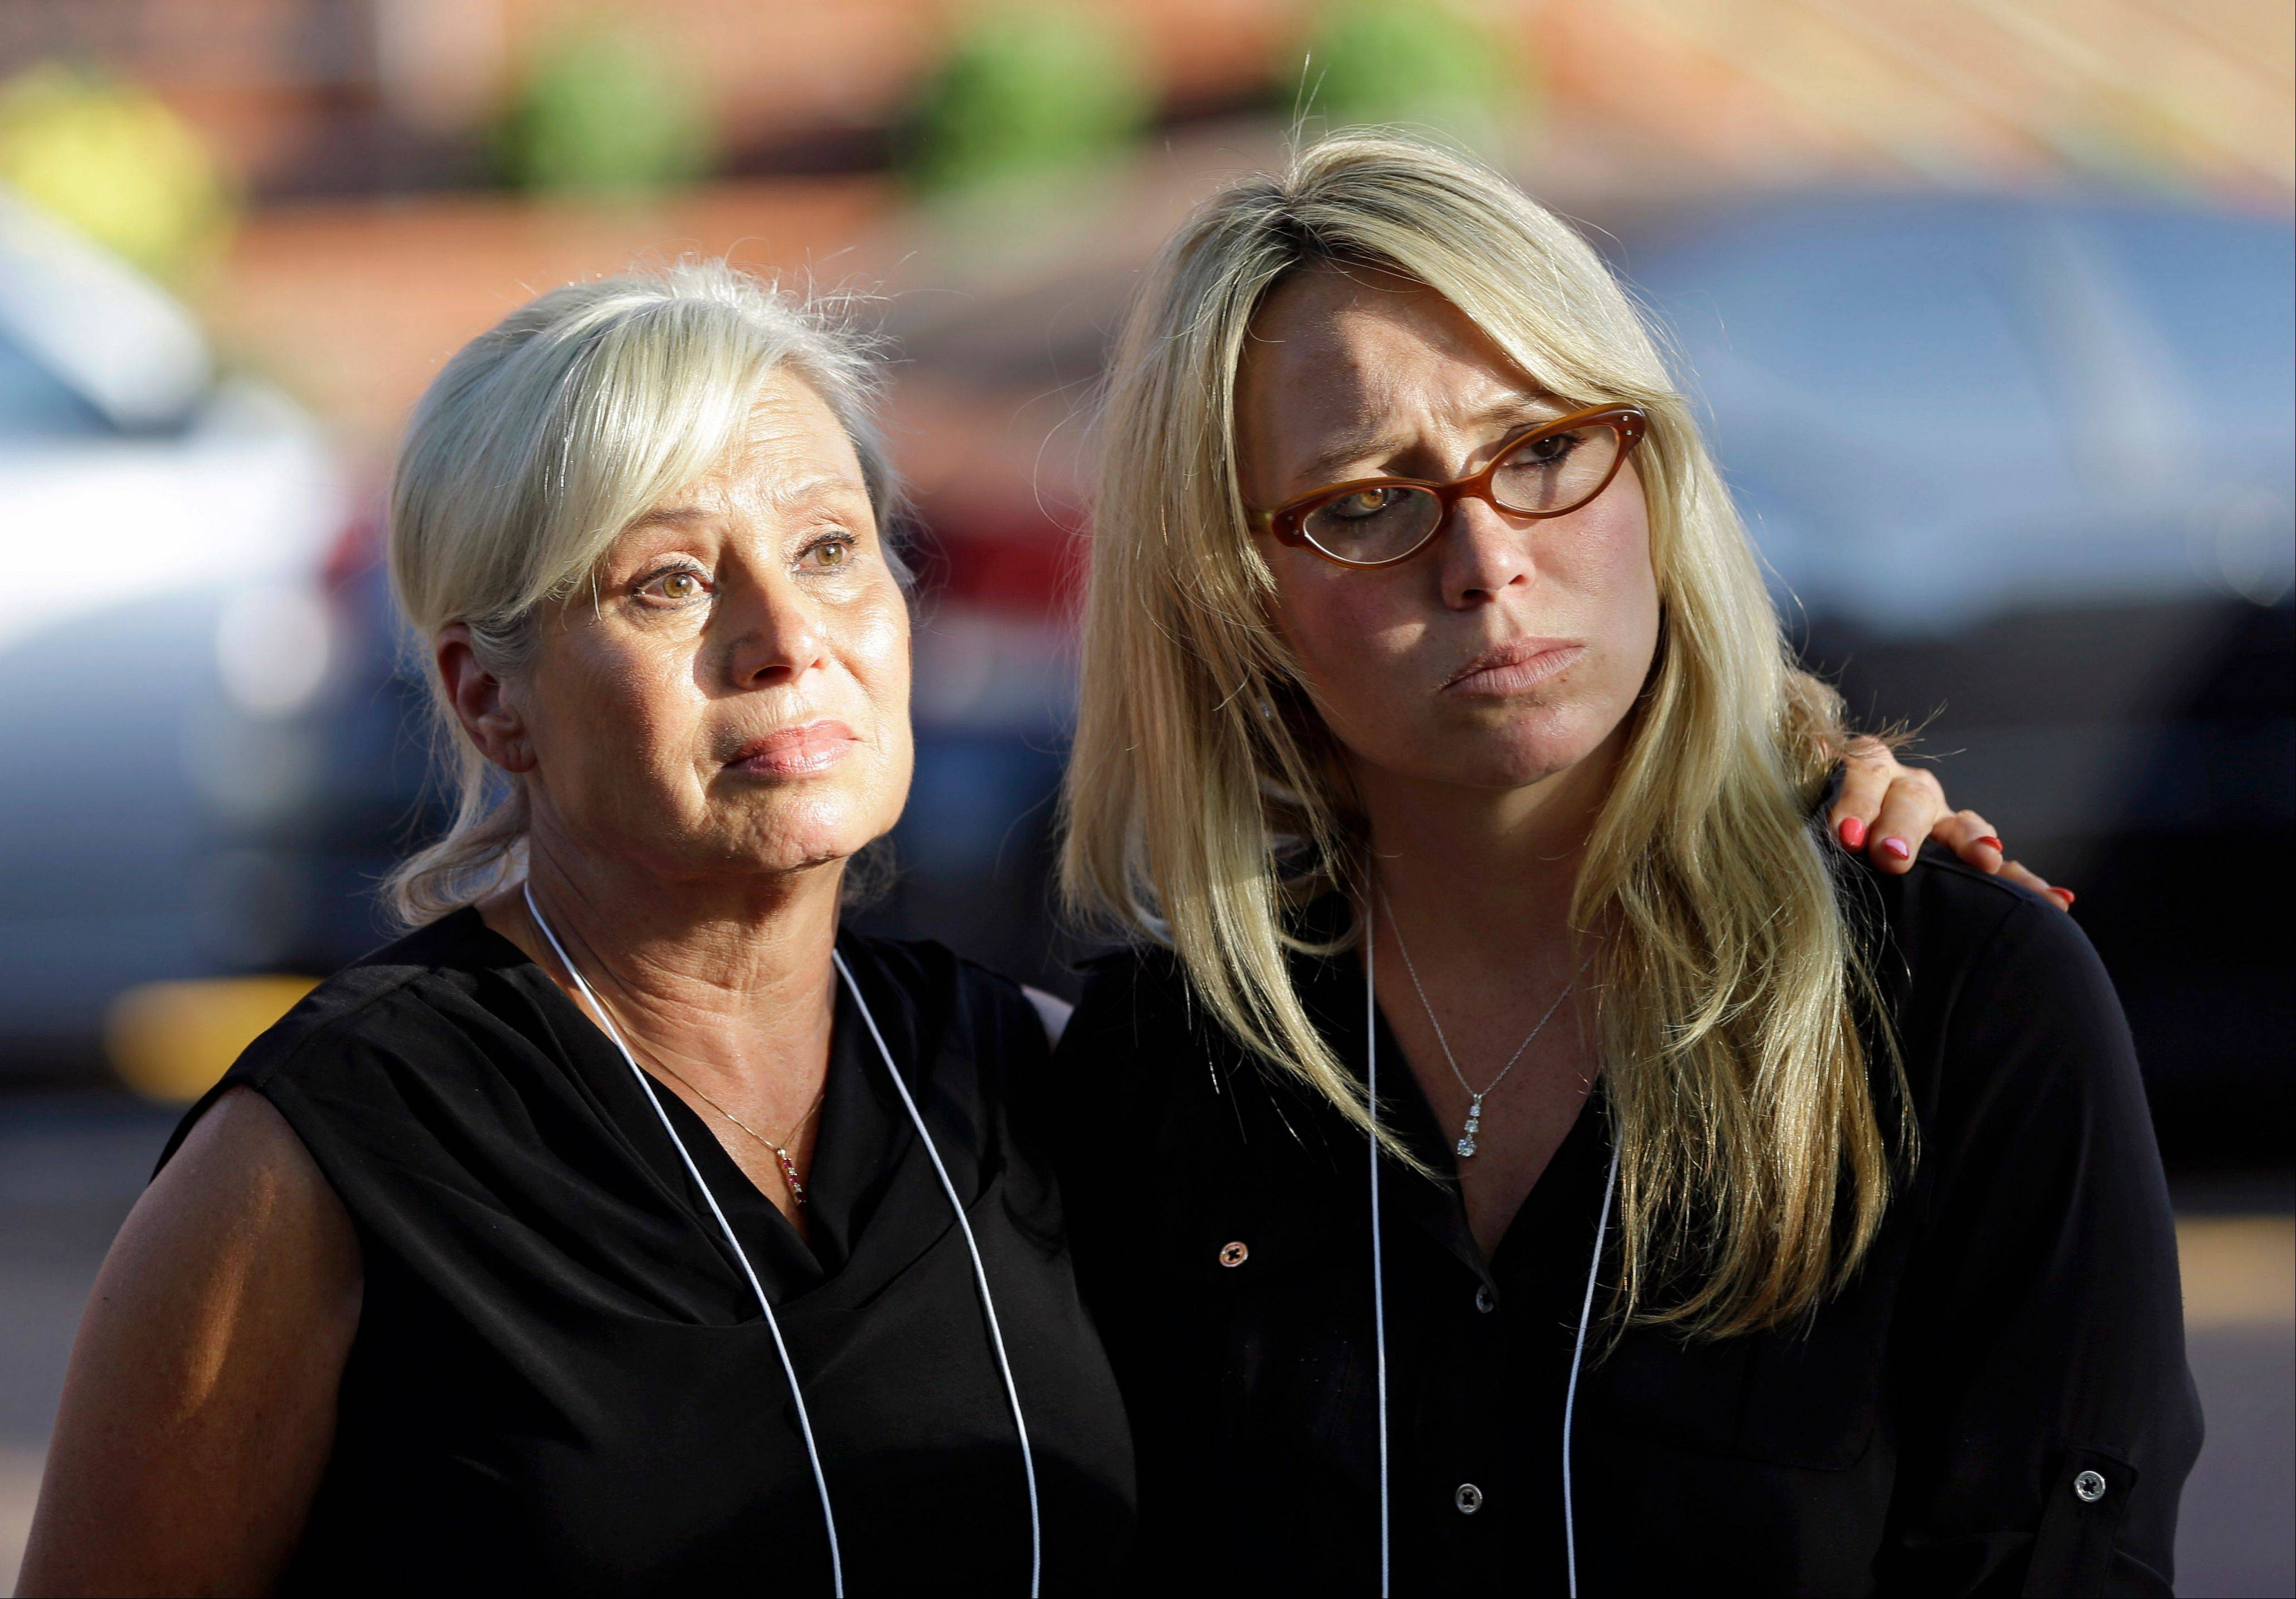 Donna Aldred, left, and her daughter, Leslie Lambert, right, listen during a news conference after the execution of Kimberly McCarthy at the Texas Department of Criminal Justice Huntsville Unit. Aldred's mother, Dorothy Booth, was killed by Kimberly McCarthy in 1997. McCarthy is the 500th person executed in Texas since 1982.